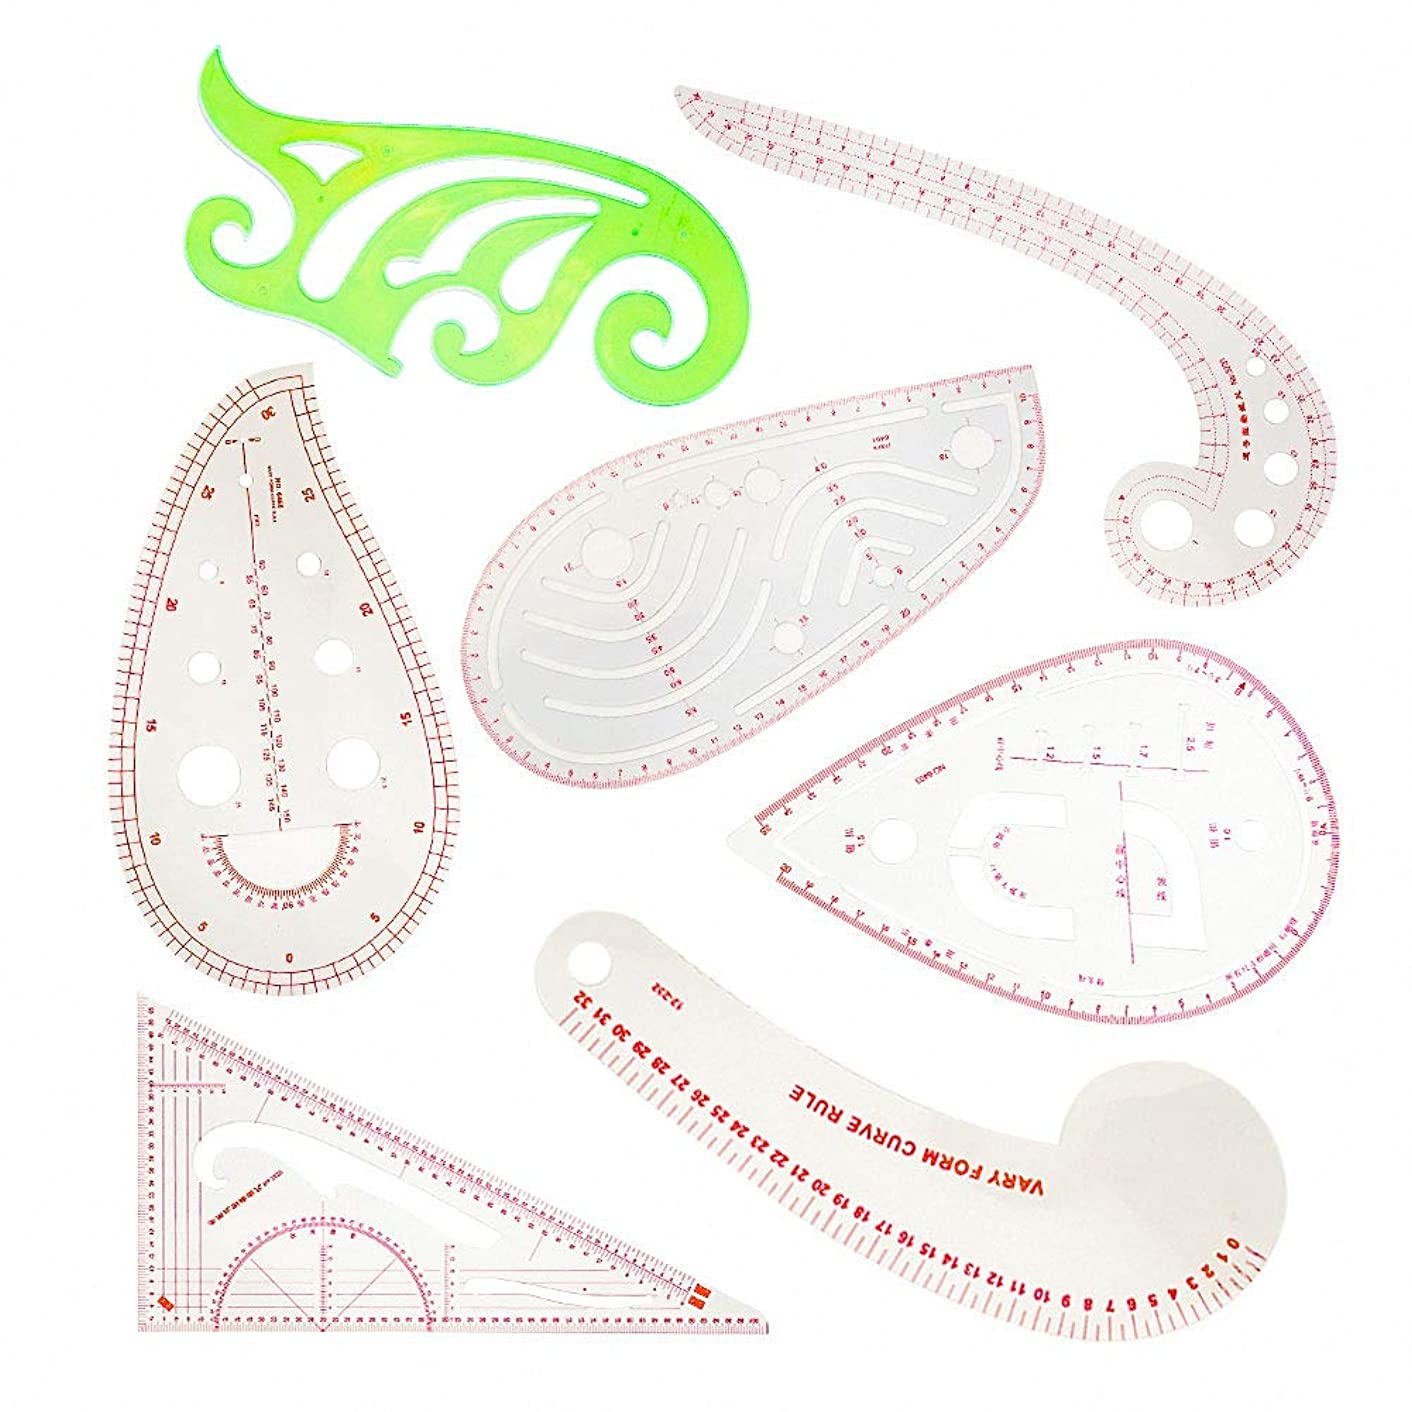 7 Pieces French Metric Ruler,7 Styles Plastic Sew Ruler Curve Shaped Measure Ruler for Dressmaking, Tailoring, Fashion Designing, Pattern Grading, DIY Clothing,